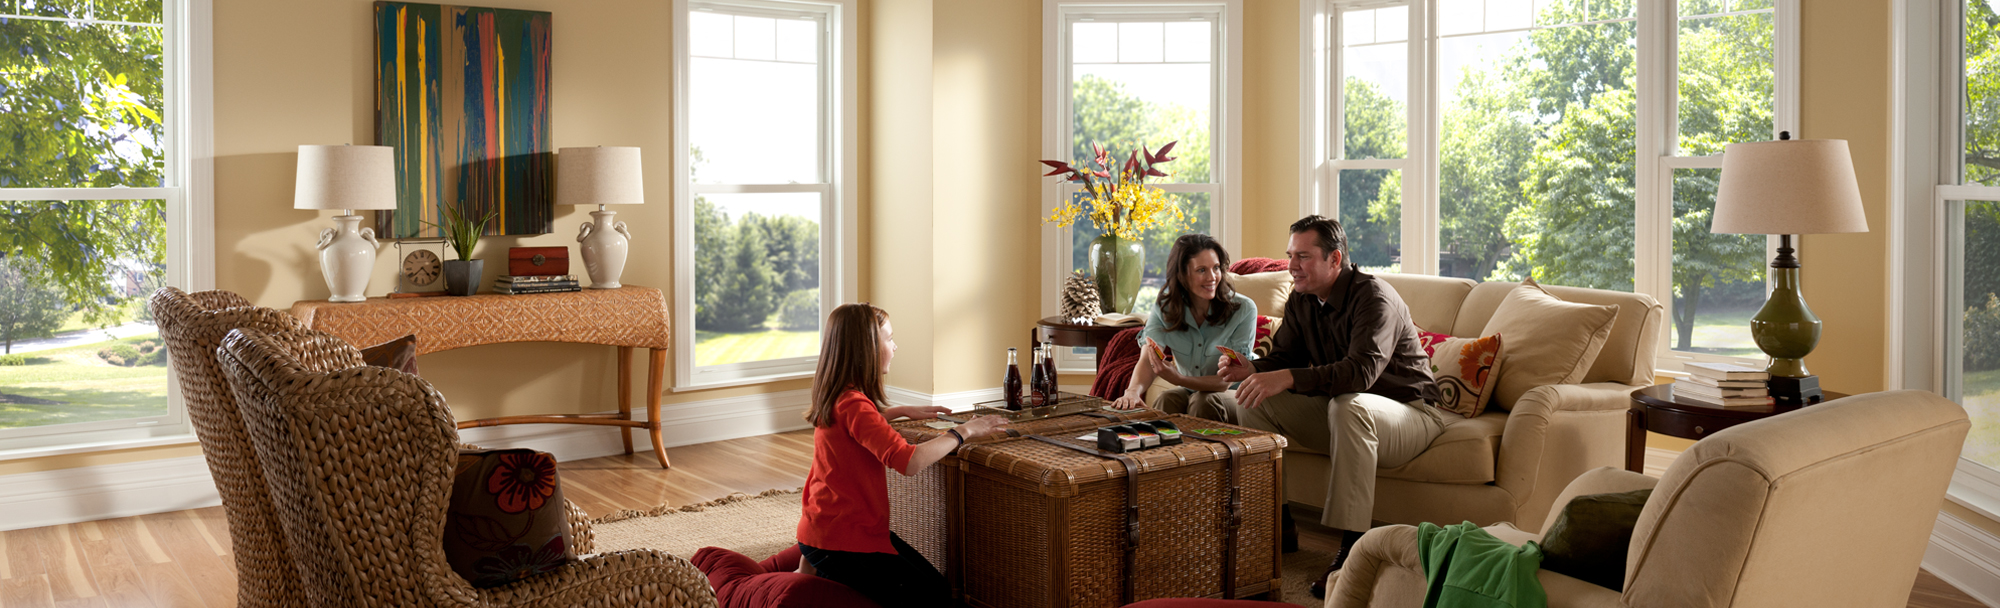 Family room with double hung windows with family gathered around coffee table